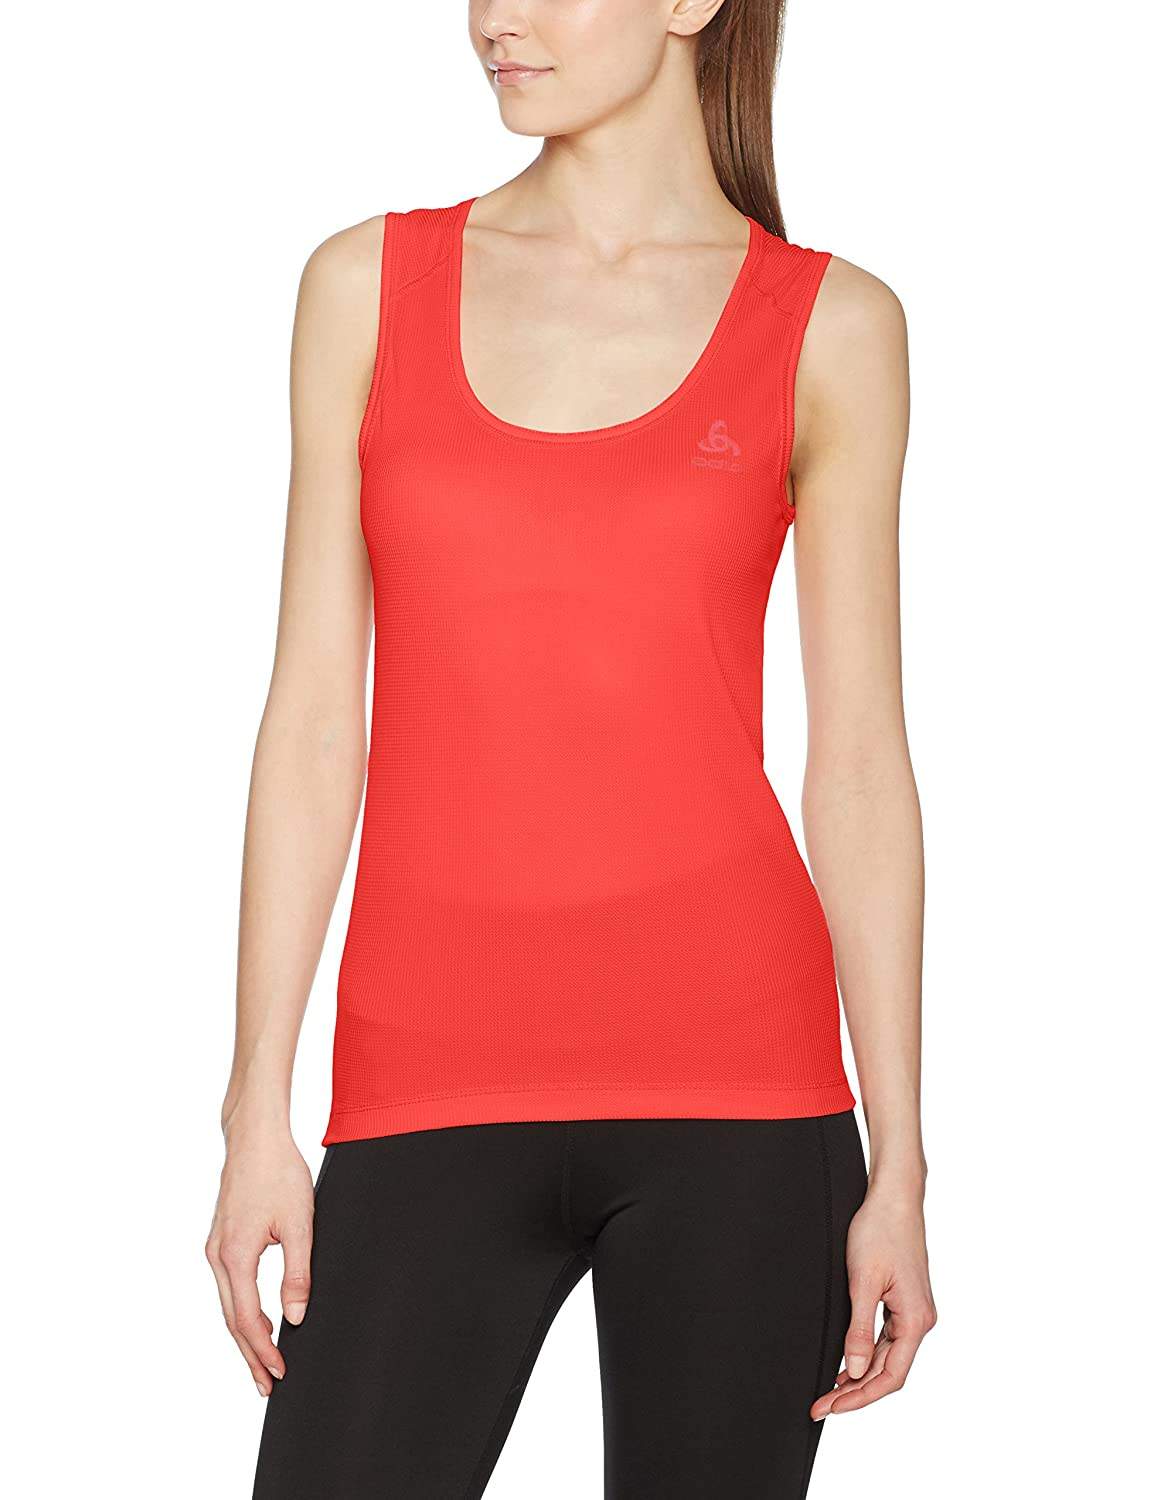 Odlo Singlet Crew Neck Cubic Unterhemd, Mujer, 191131, Coral, Extra-Large